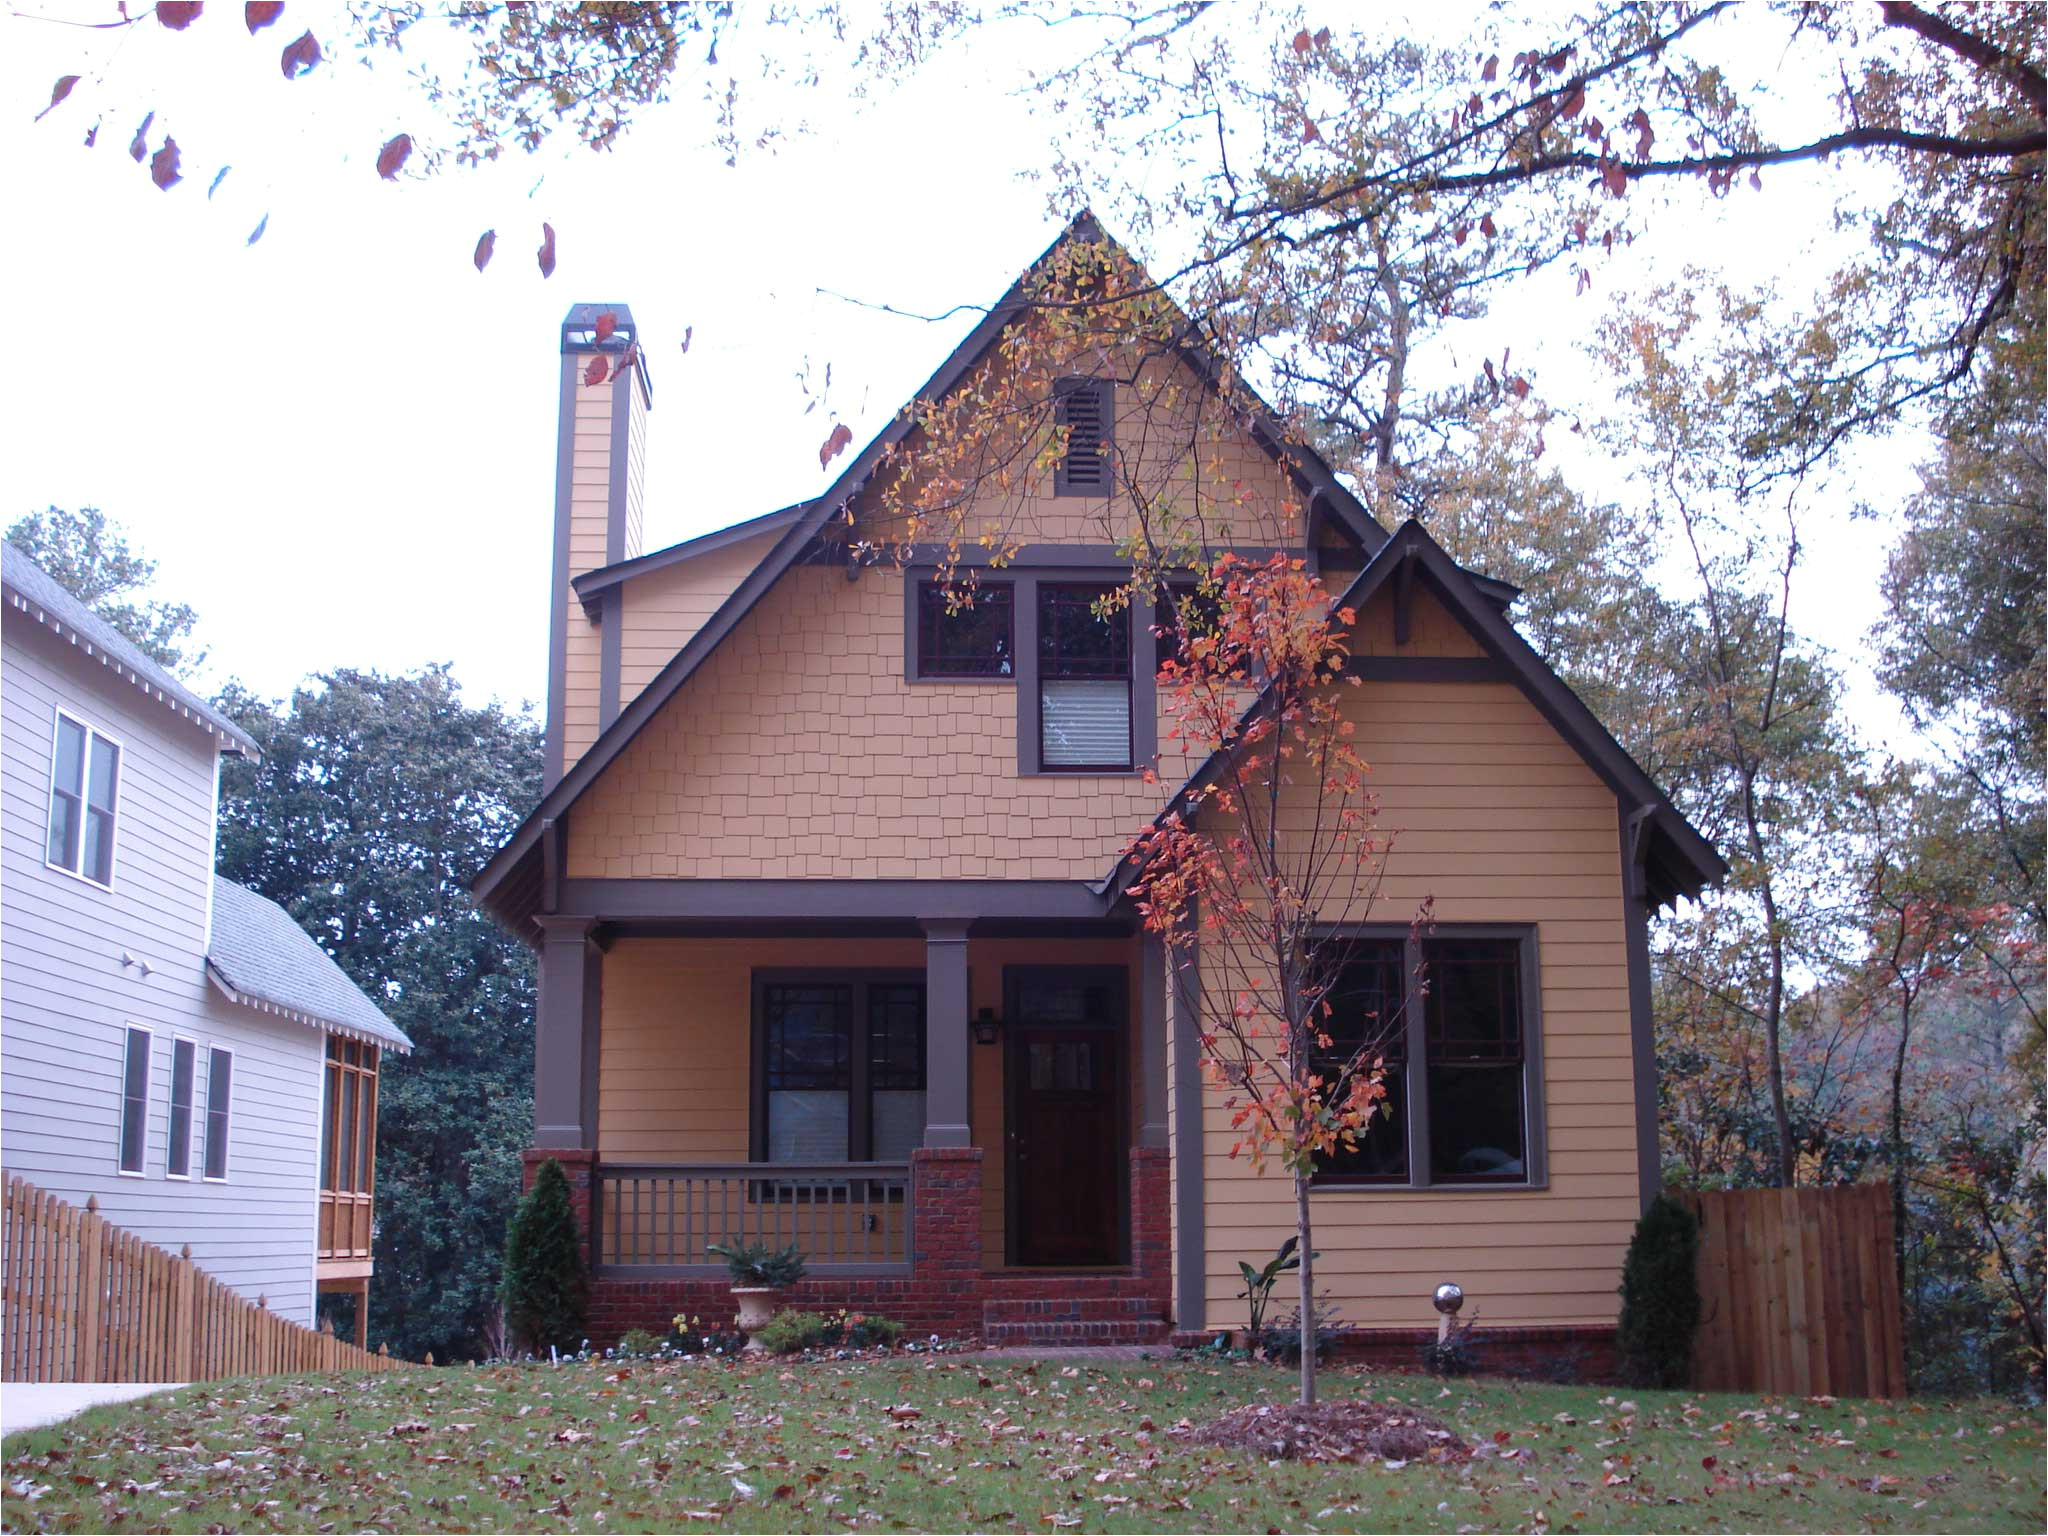 House Plans for Rear View Lots | plougonver.com on mountain house plans with view, 3 bedroom house plans with view, hillside house plans with view, contemporary house plans with view, craftsman house plans with view, ranch house plans with view, small house plans with view, open floor plans with view,